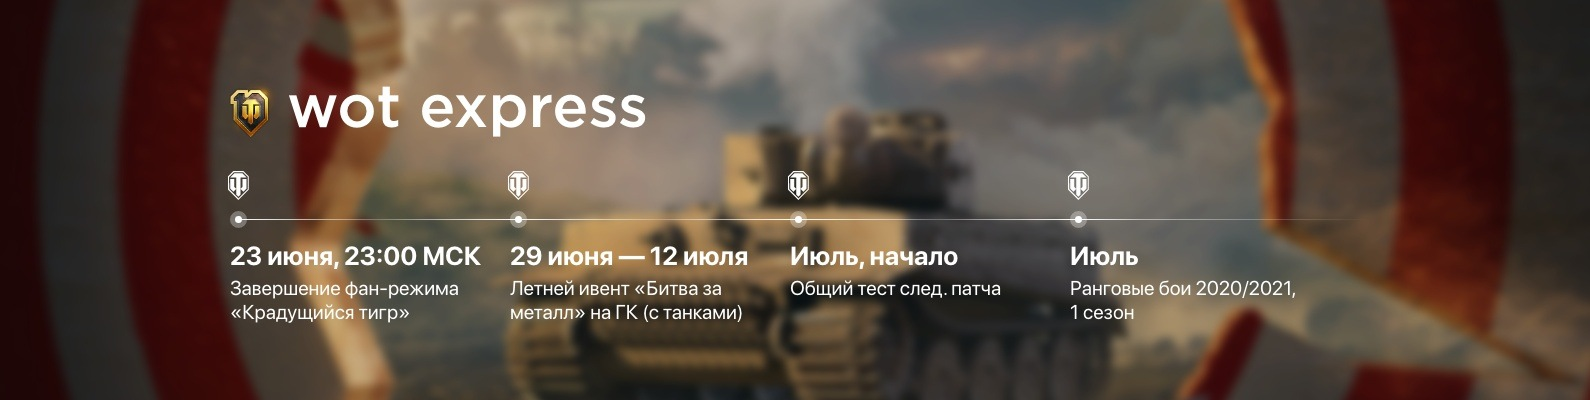 World of tanks гайд джова